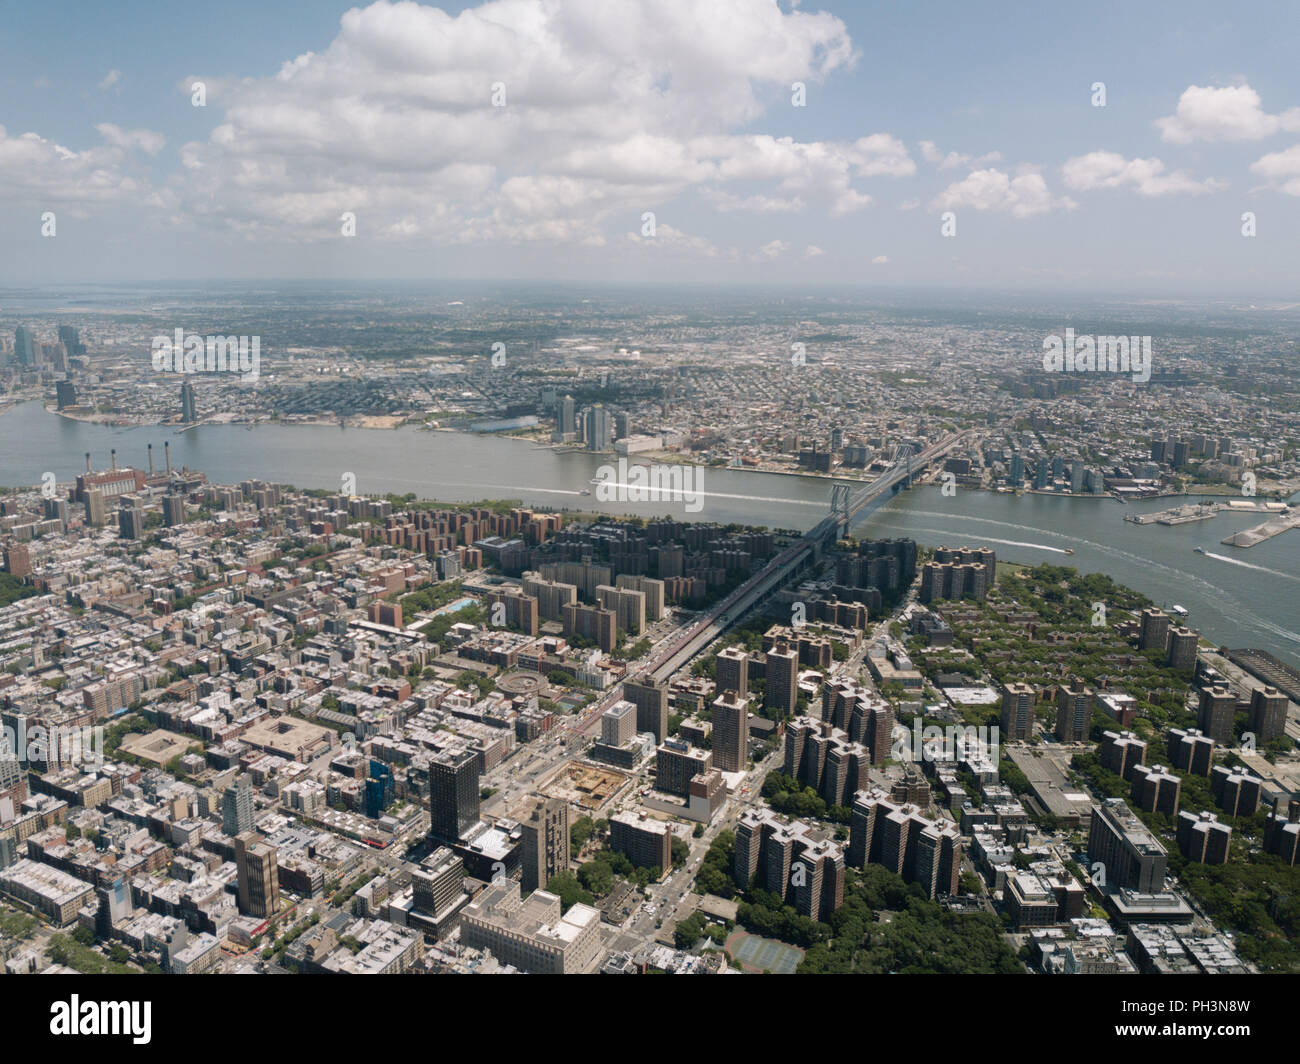 Drone Aerial Shot World Trade Center City View Beautiful NYC New York - Stock Image